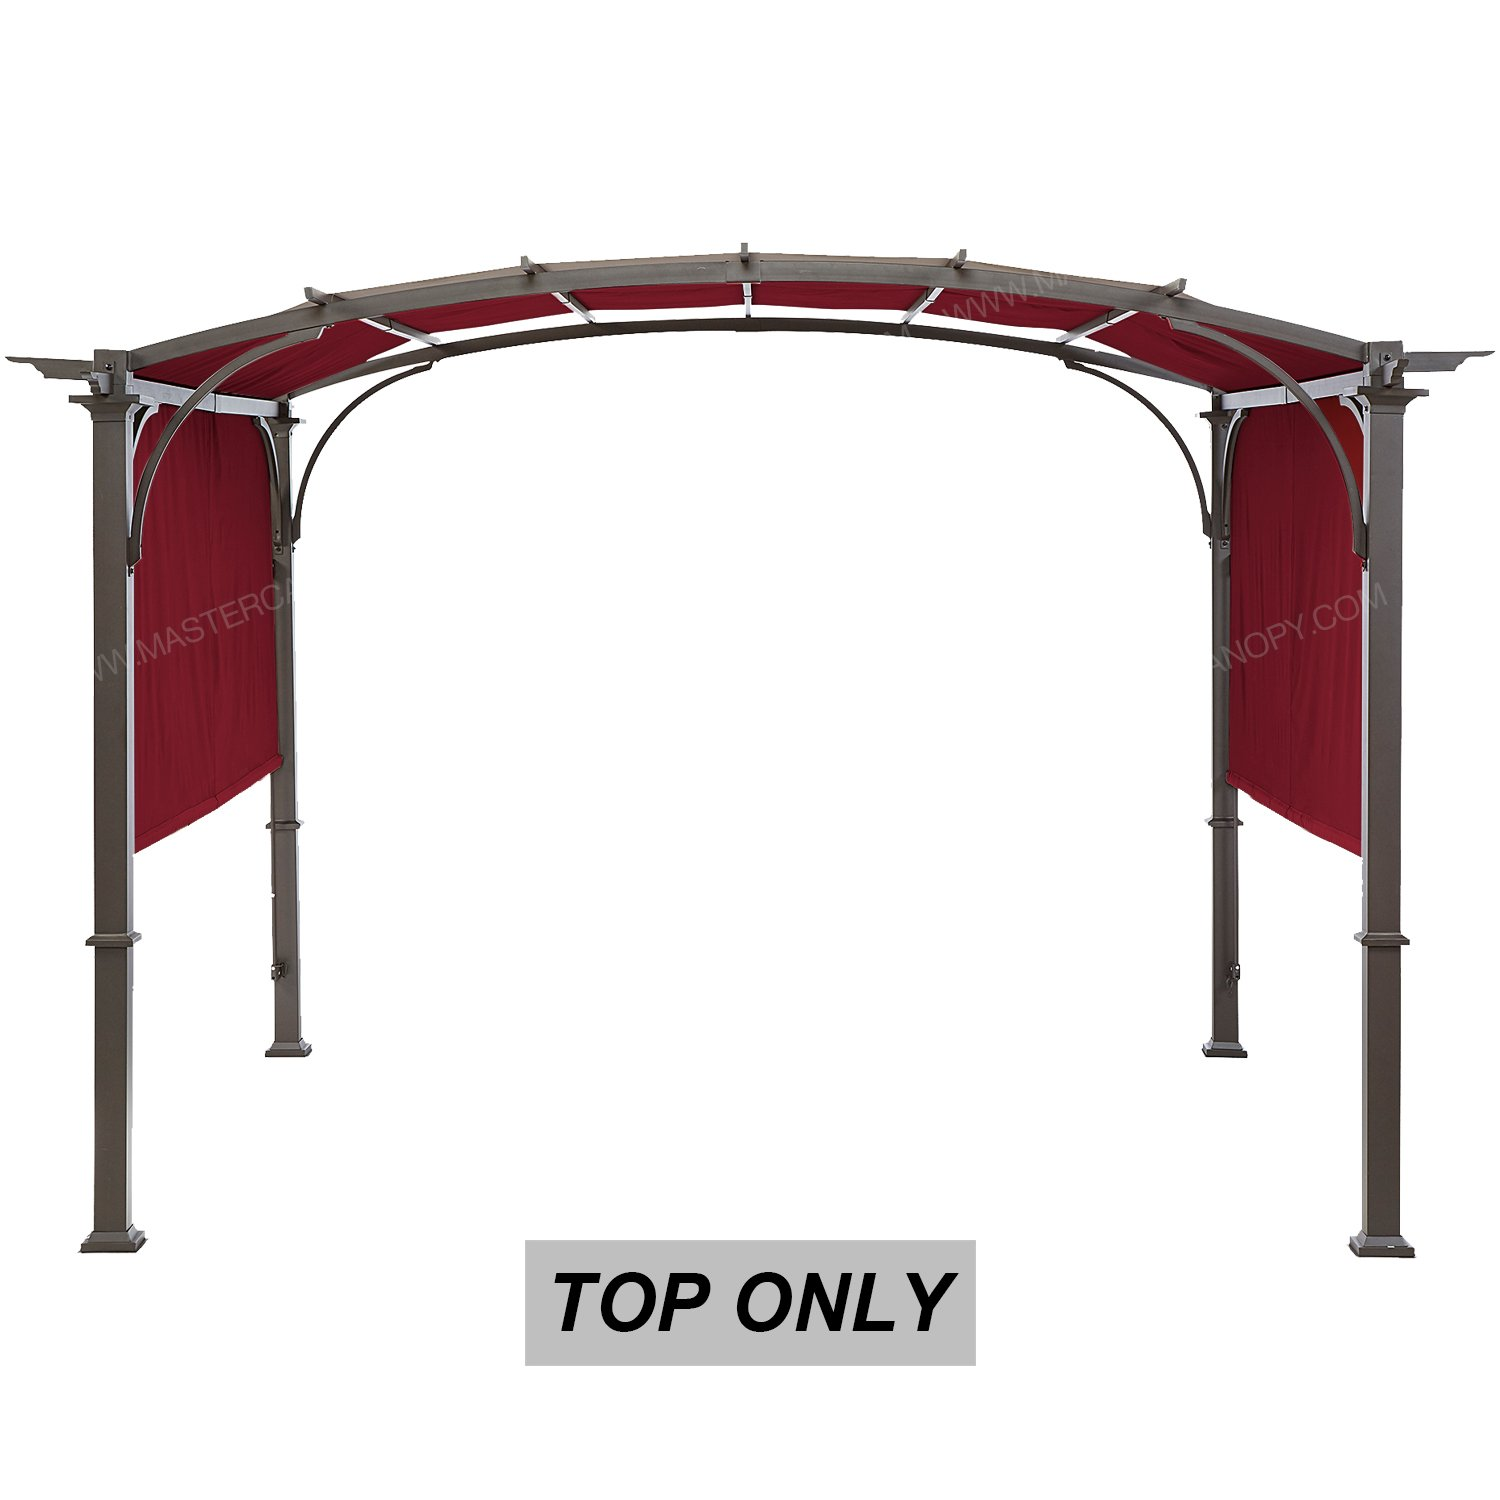 MASTERCANOPY Universal Doubleton Steel Pergola Replacement Cover for Pergola Structures 80''x 205''Burgundy(Cover only